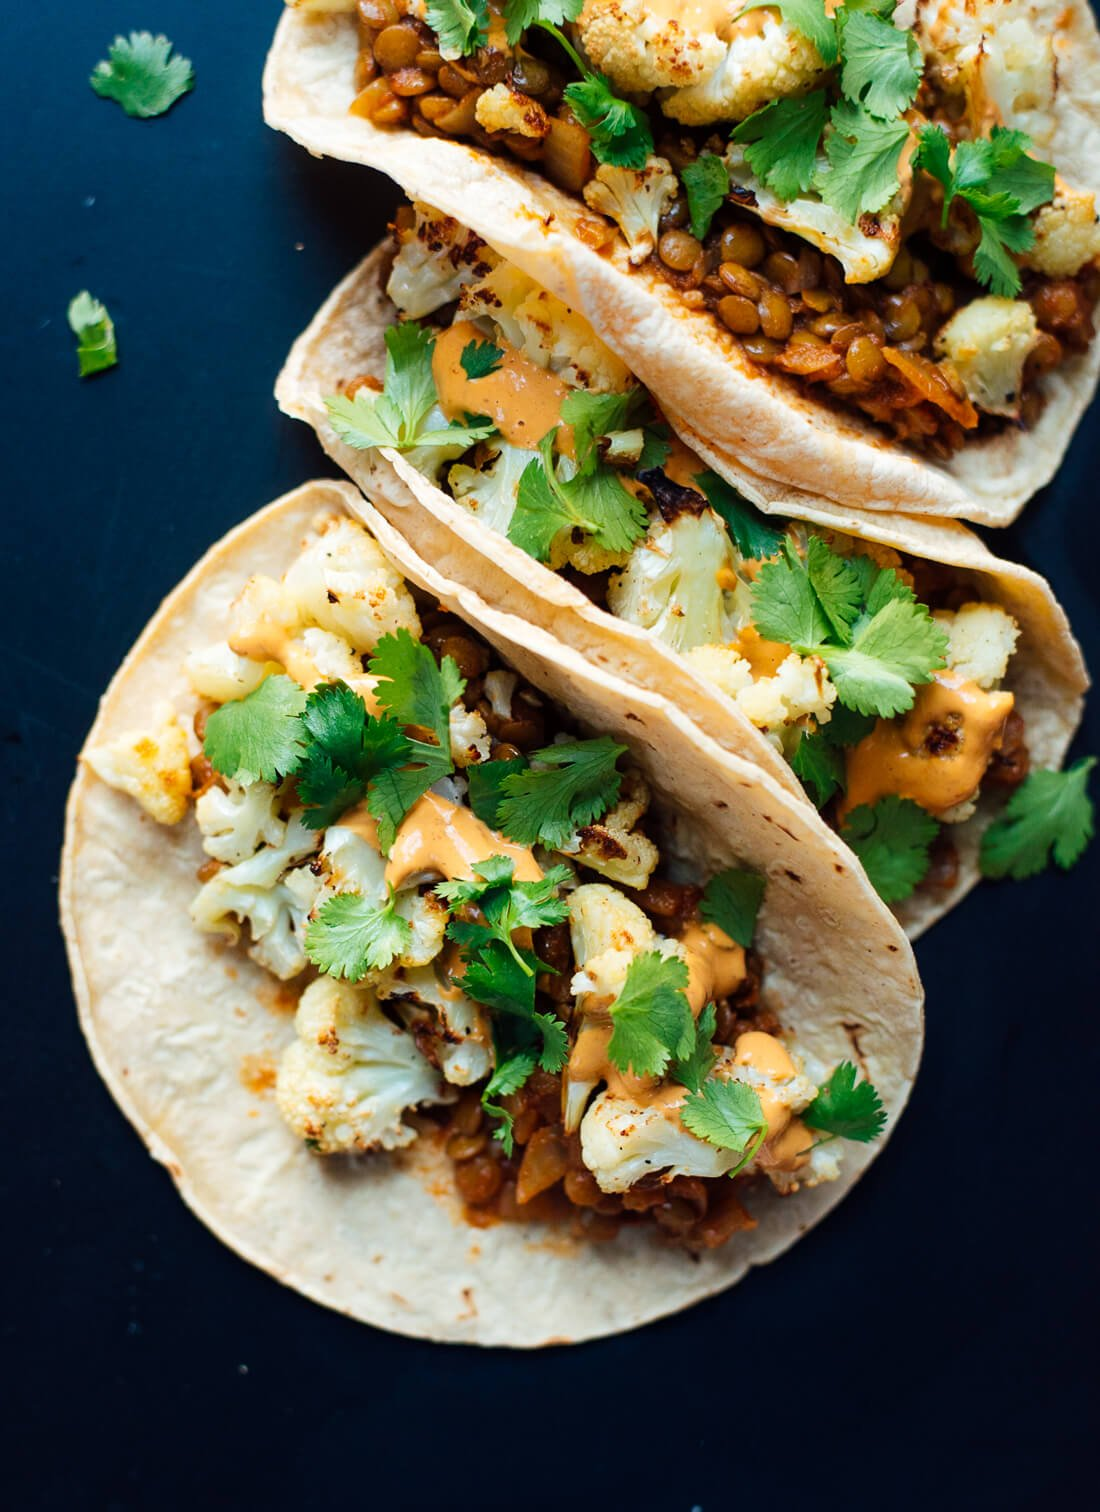 Roasted cauliflower and lentil tacos with creamy chipotle sauce